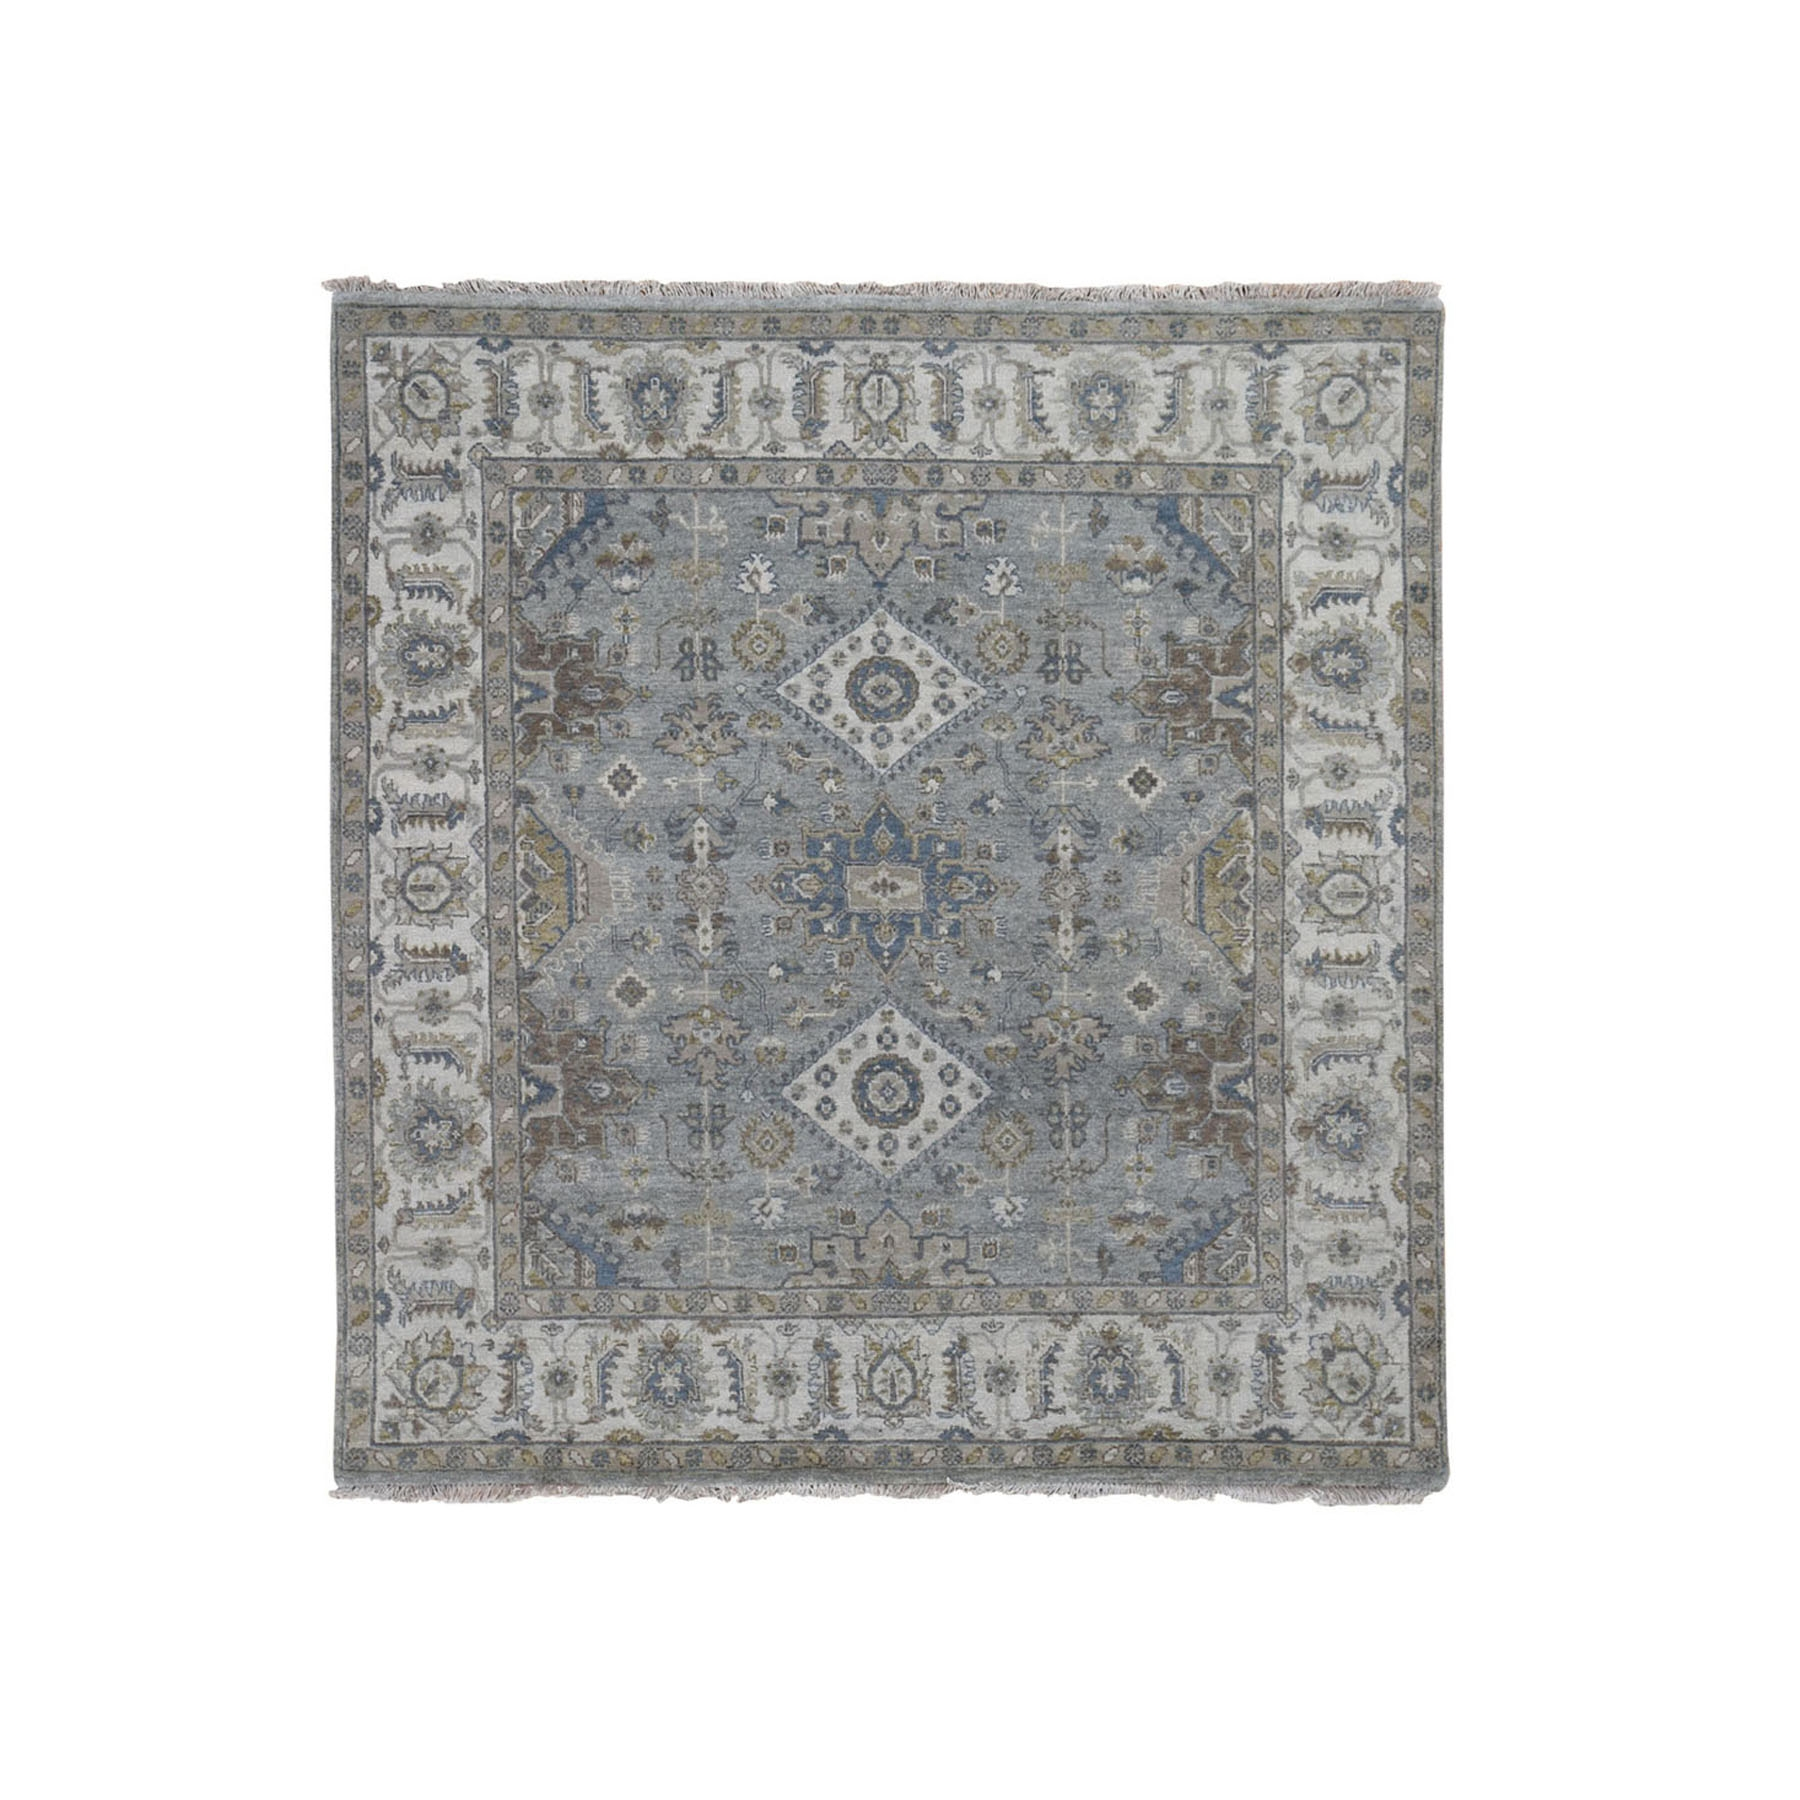 "5'1""X5'1"" Square Gray Karajeh Design Pure Wool Hand Knotted Oriental Rug moad8867"